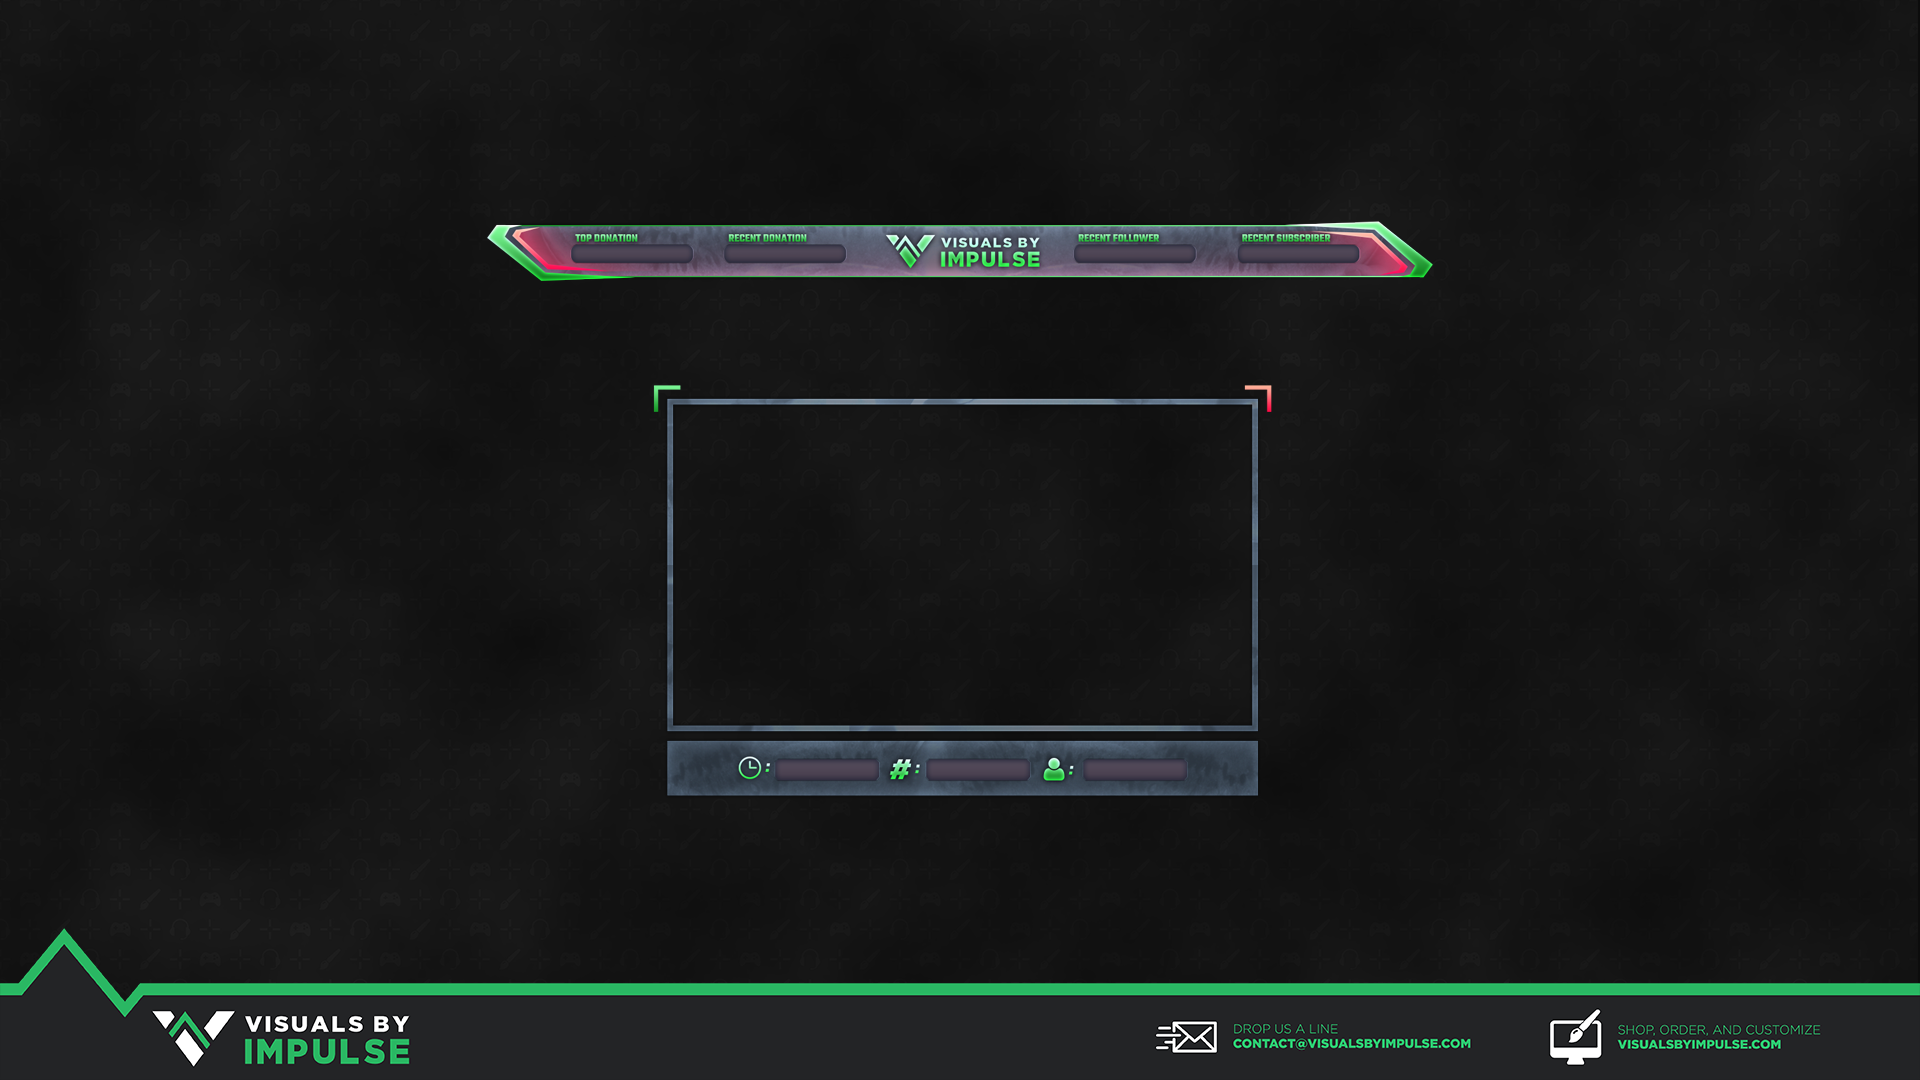 melon twitch overlay visuals by impulse